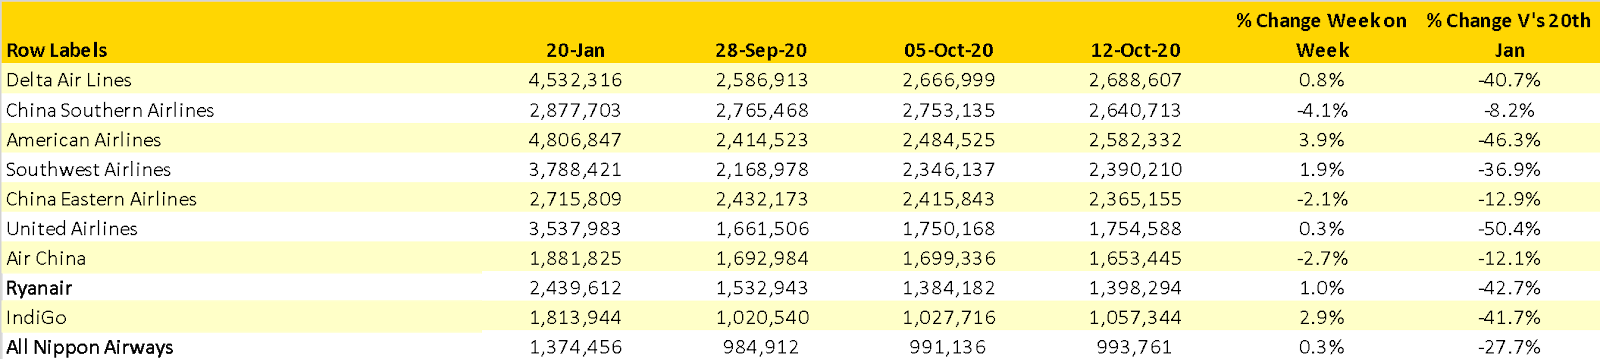 Scheduled Capacity Top 10 Airlines